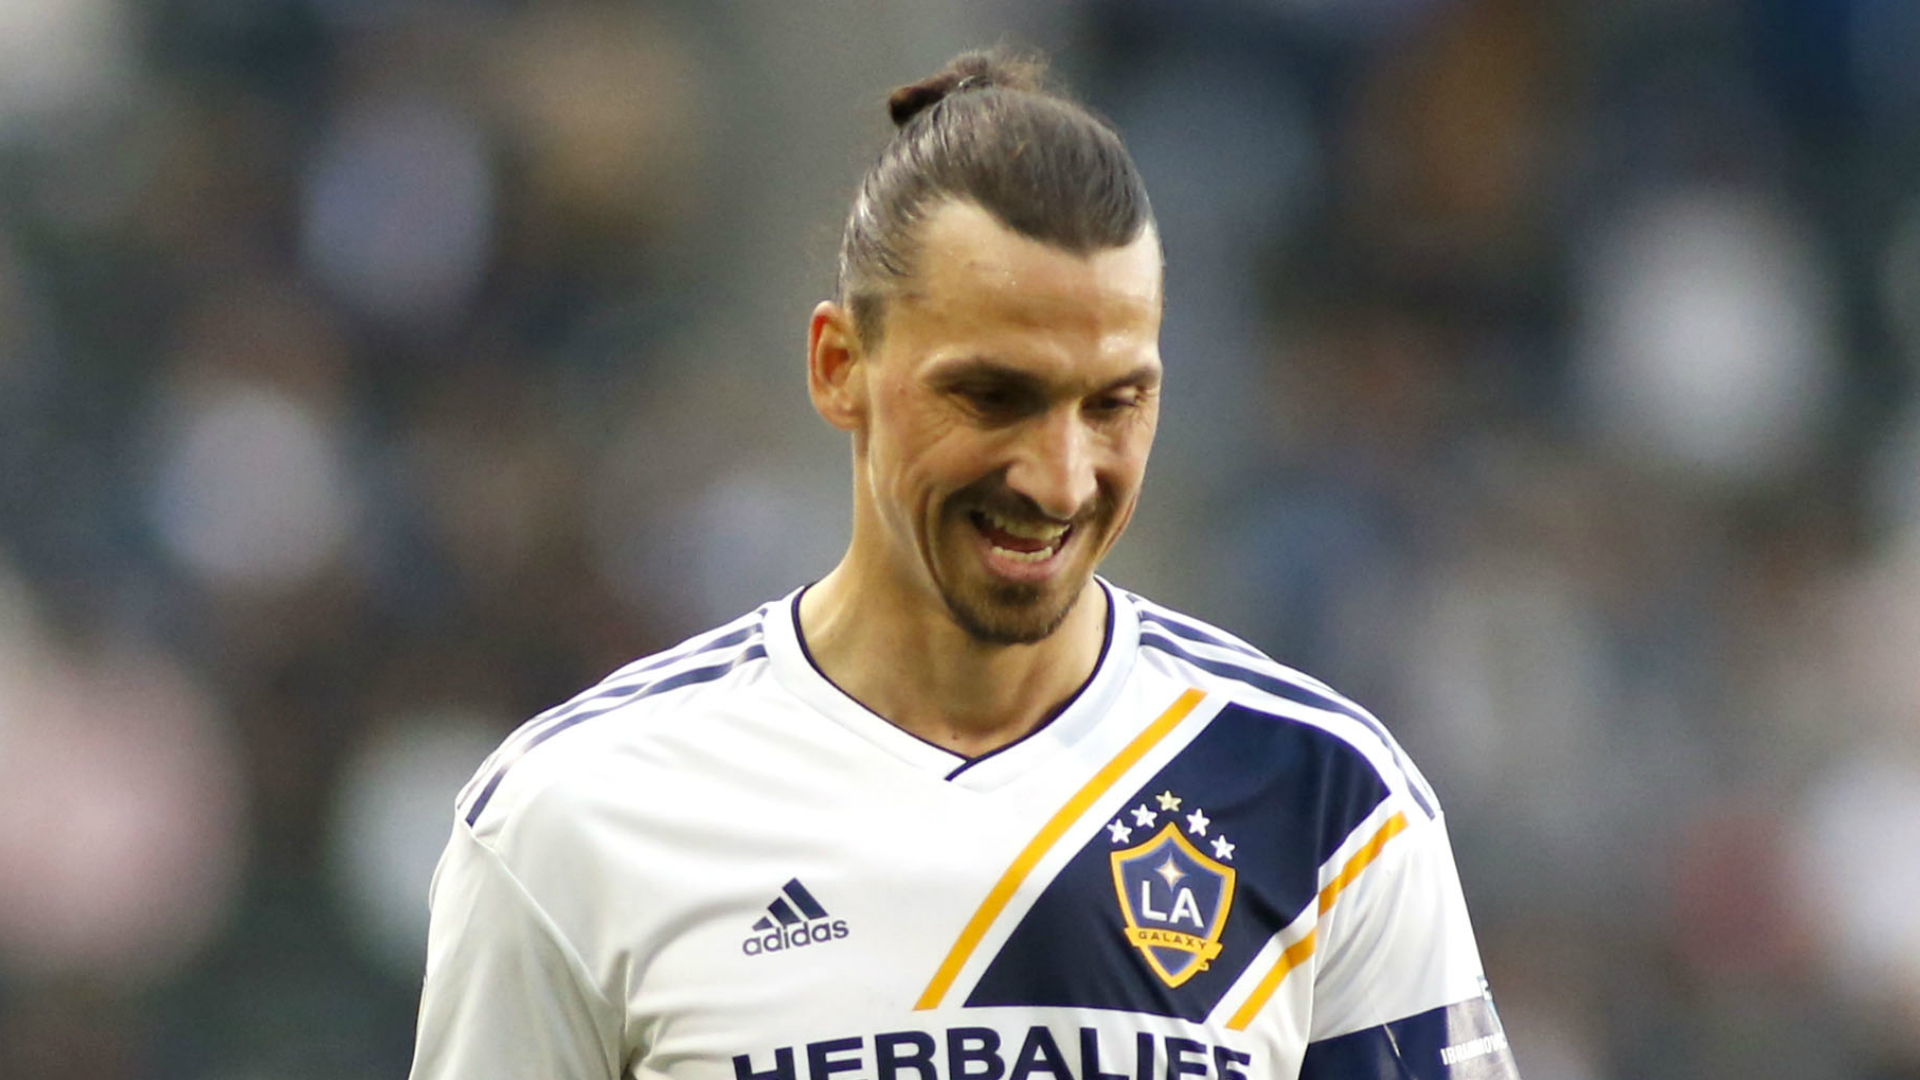 Klopp: Liverpool can't sign Zlatan because of his United past